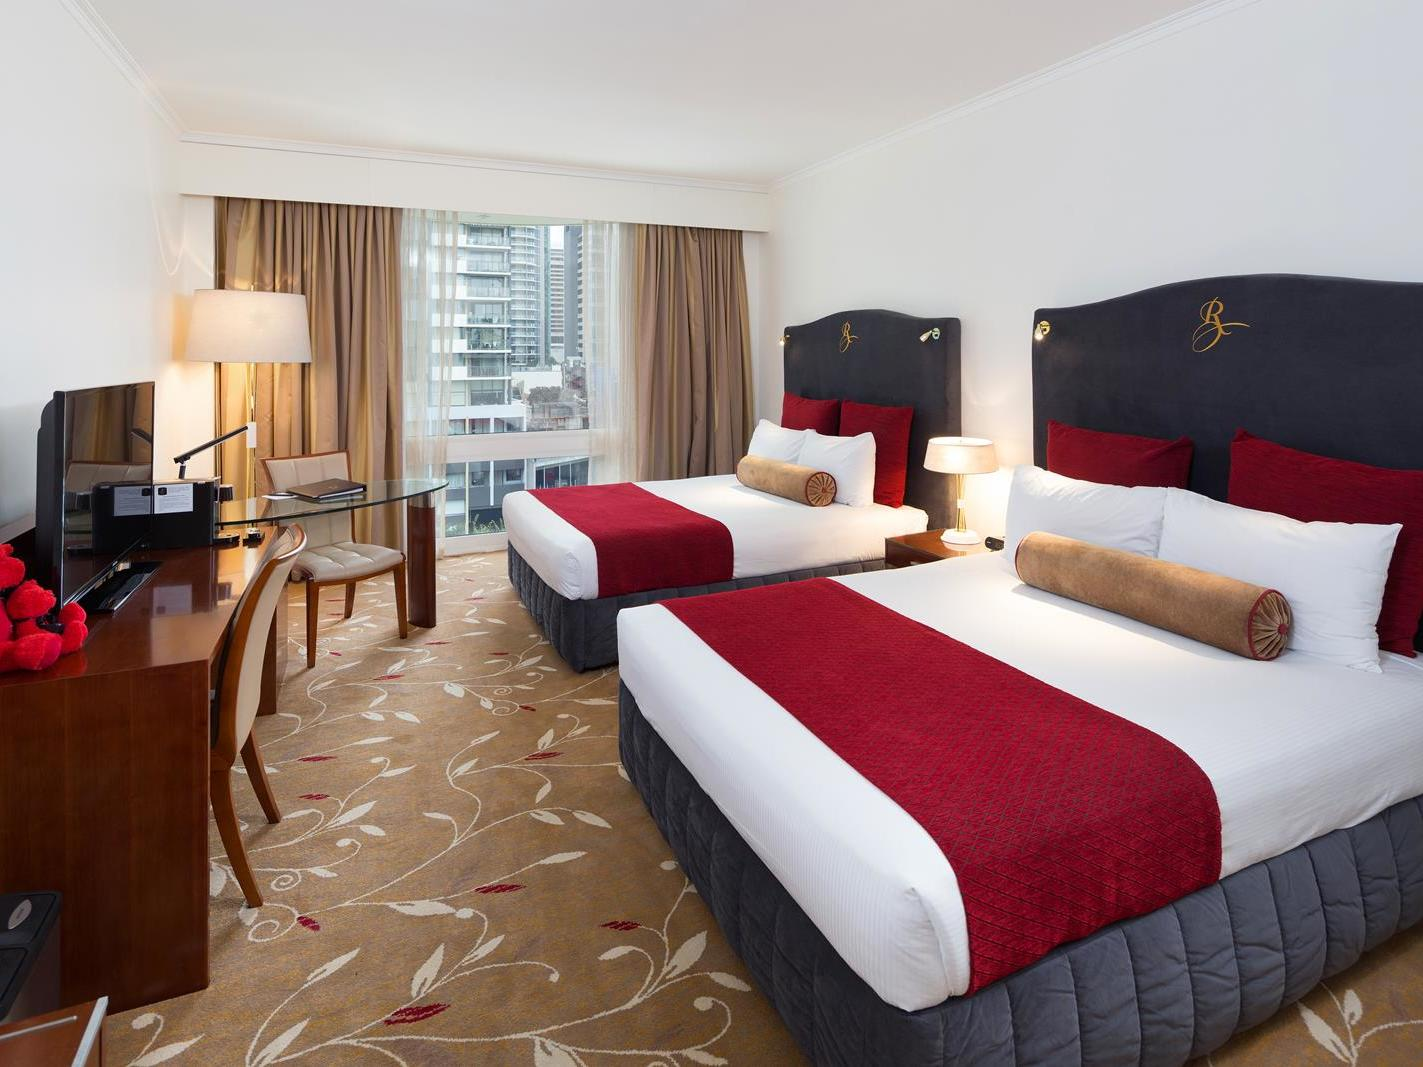 Deluxe City View Twin Room with two double beds at Royal on the Park hotel